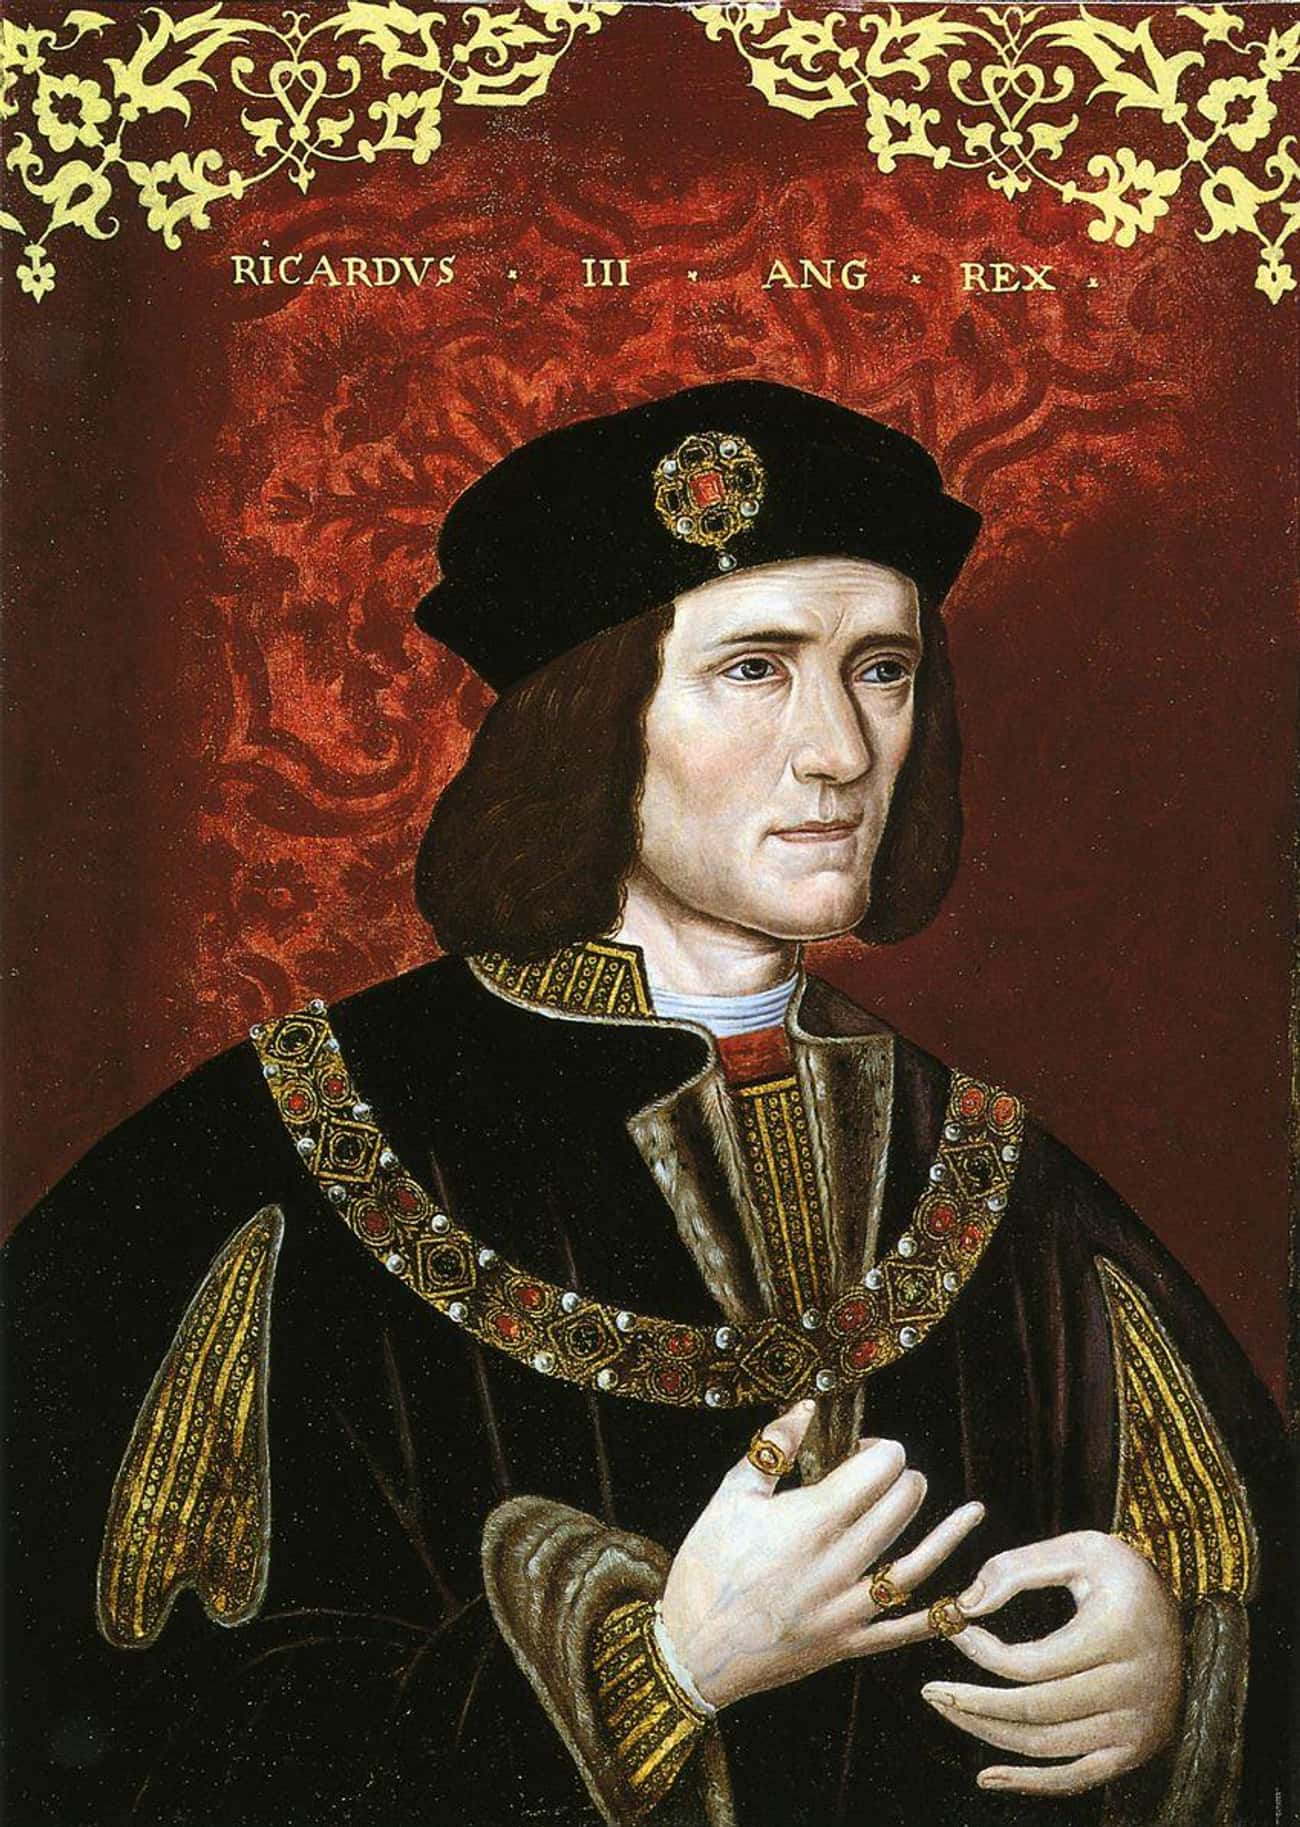 Richard III Was Unearthed In A is listed (or ranked) 1 on the list 16 Famous Bodies From History Found In Inconspicuous Places